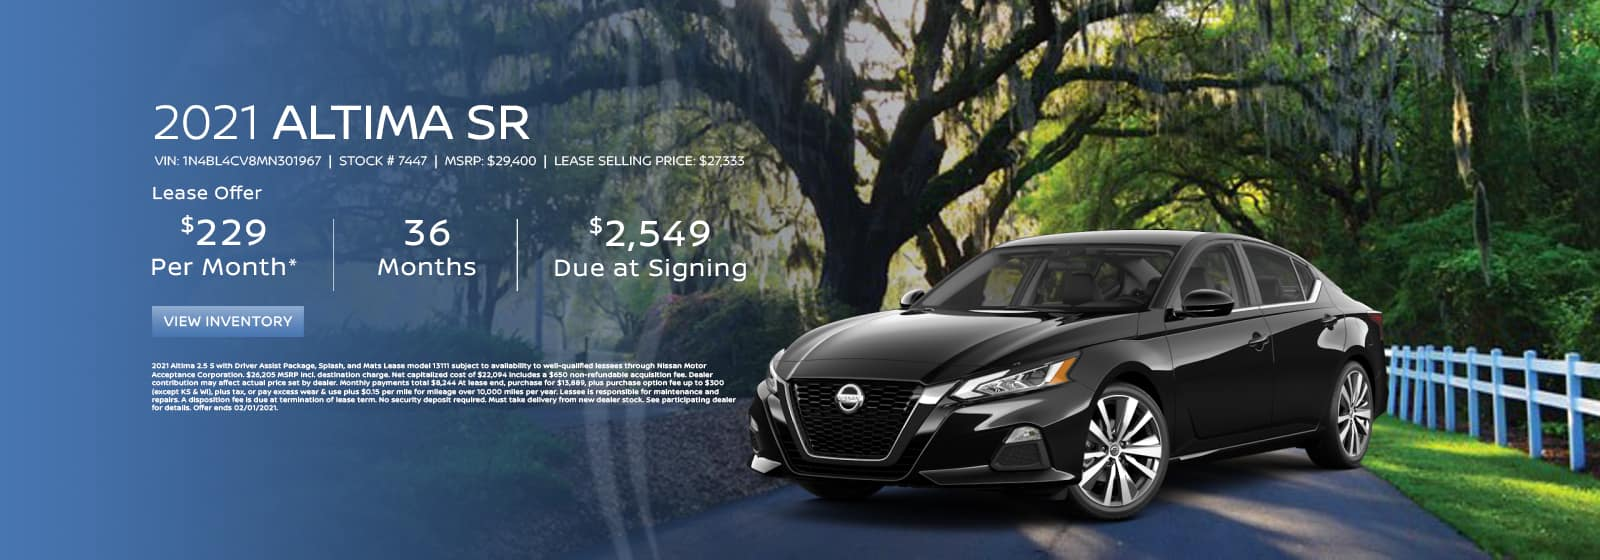 January Altima Lease Offer